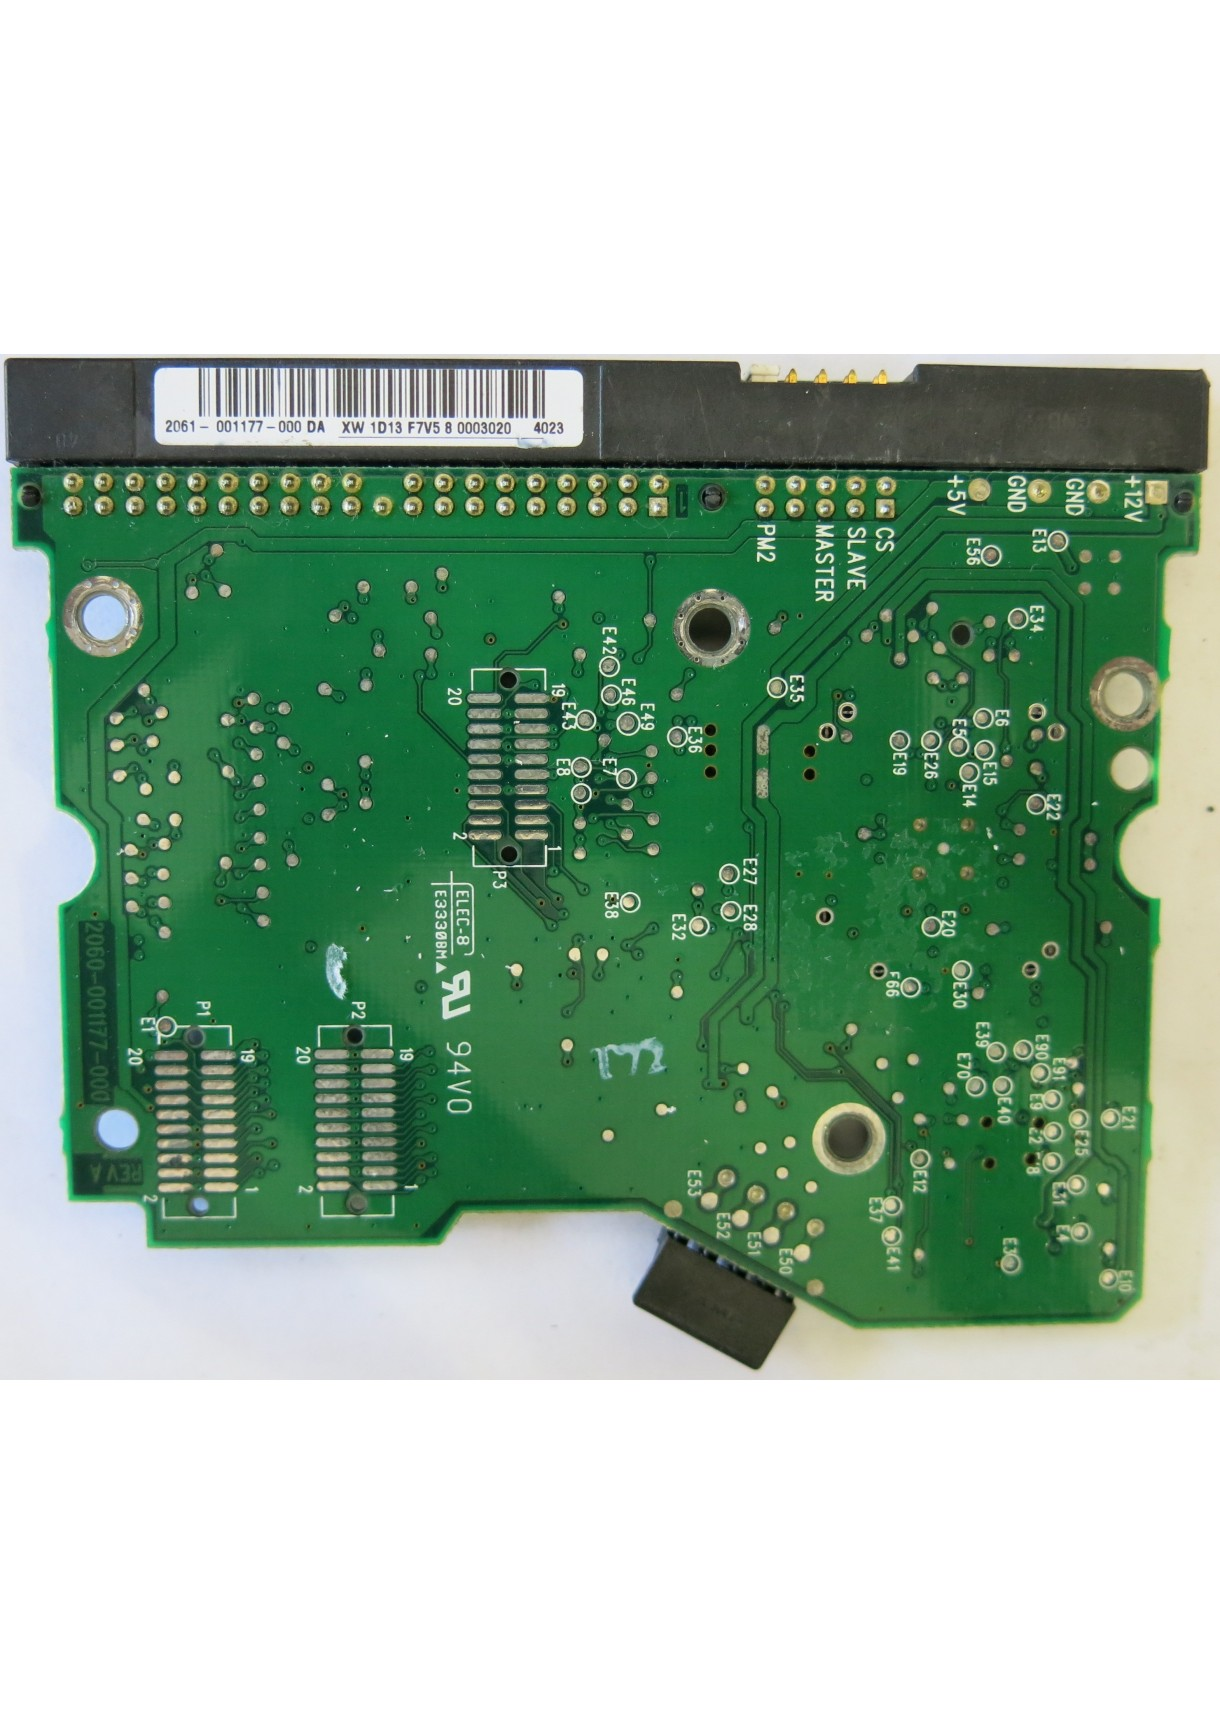 WD400BB-60DGA0 2060-001177-000 REV A PCB